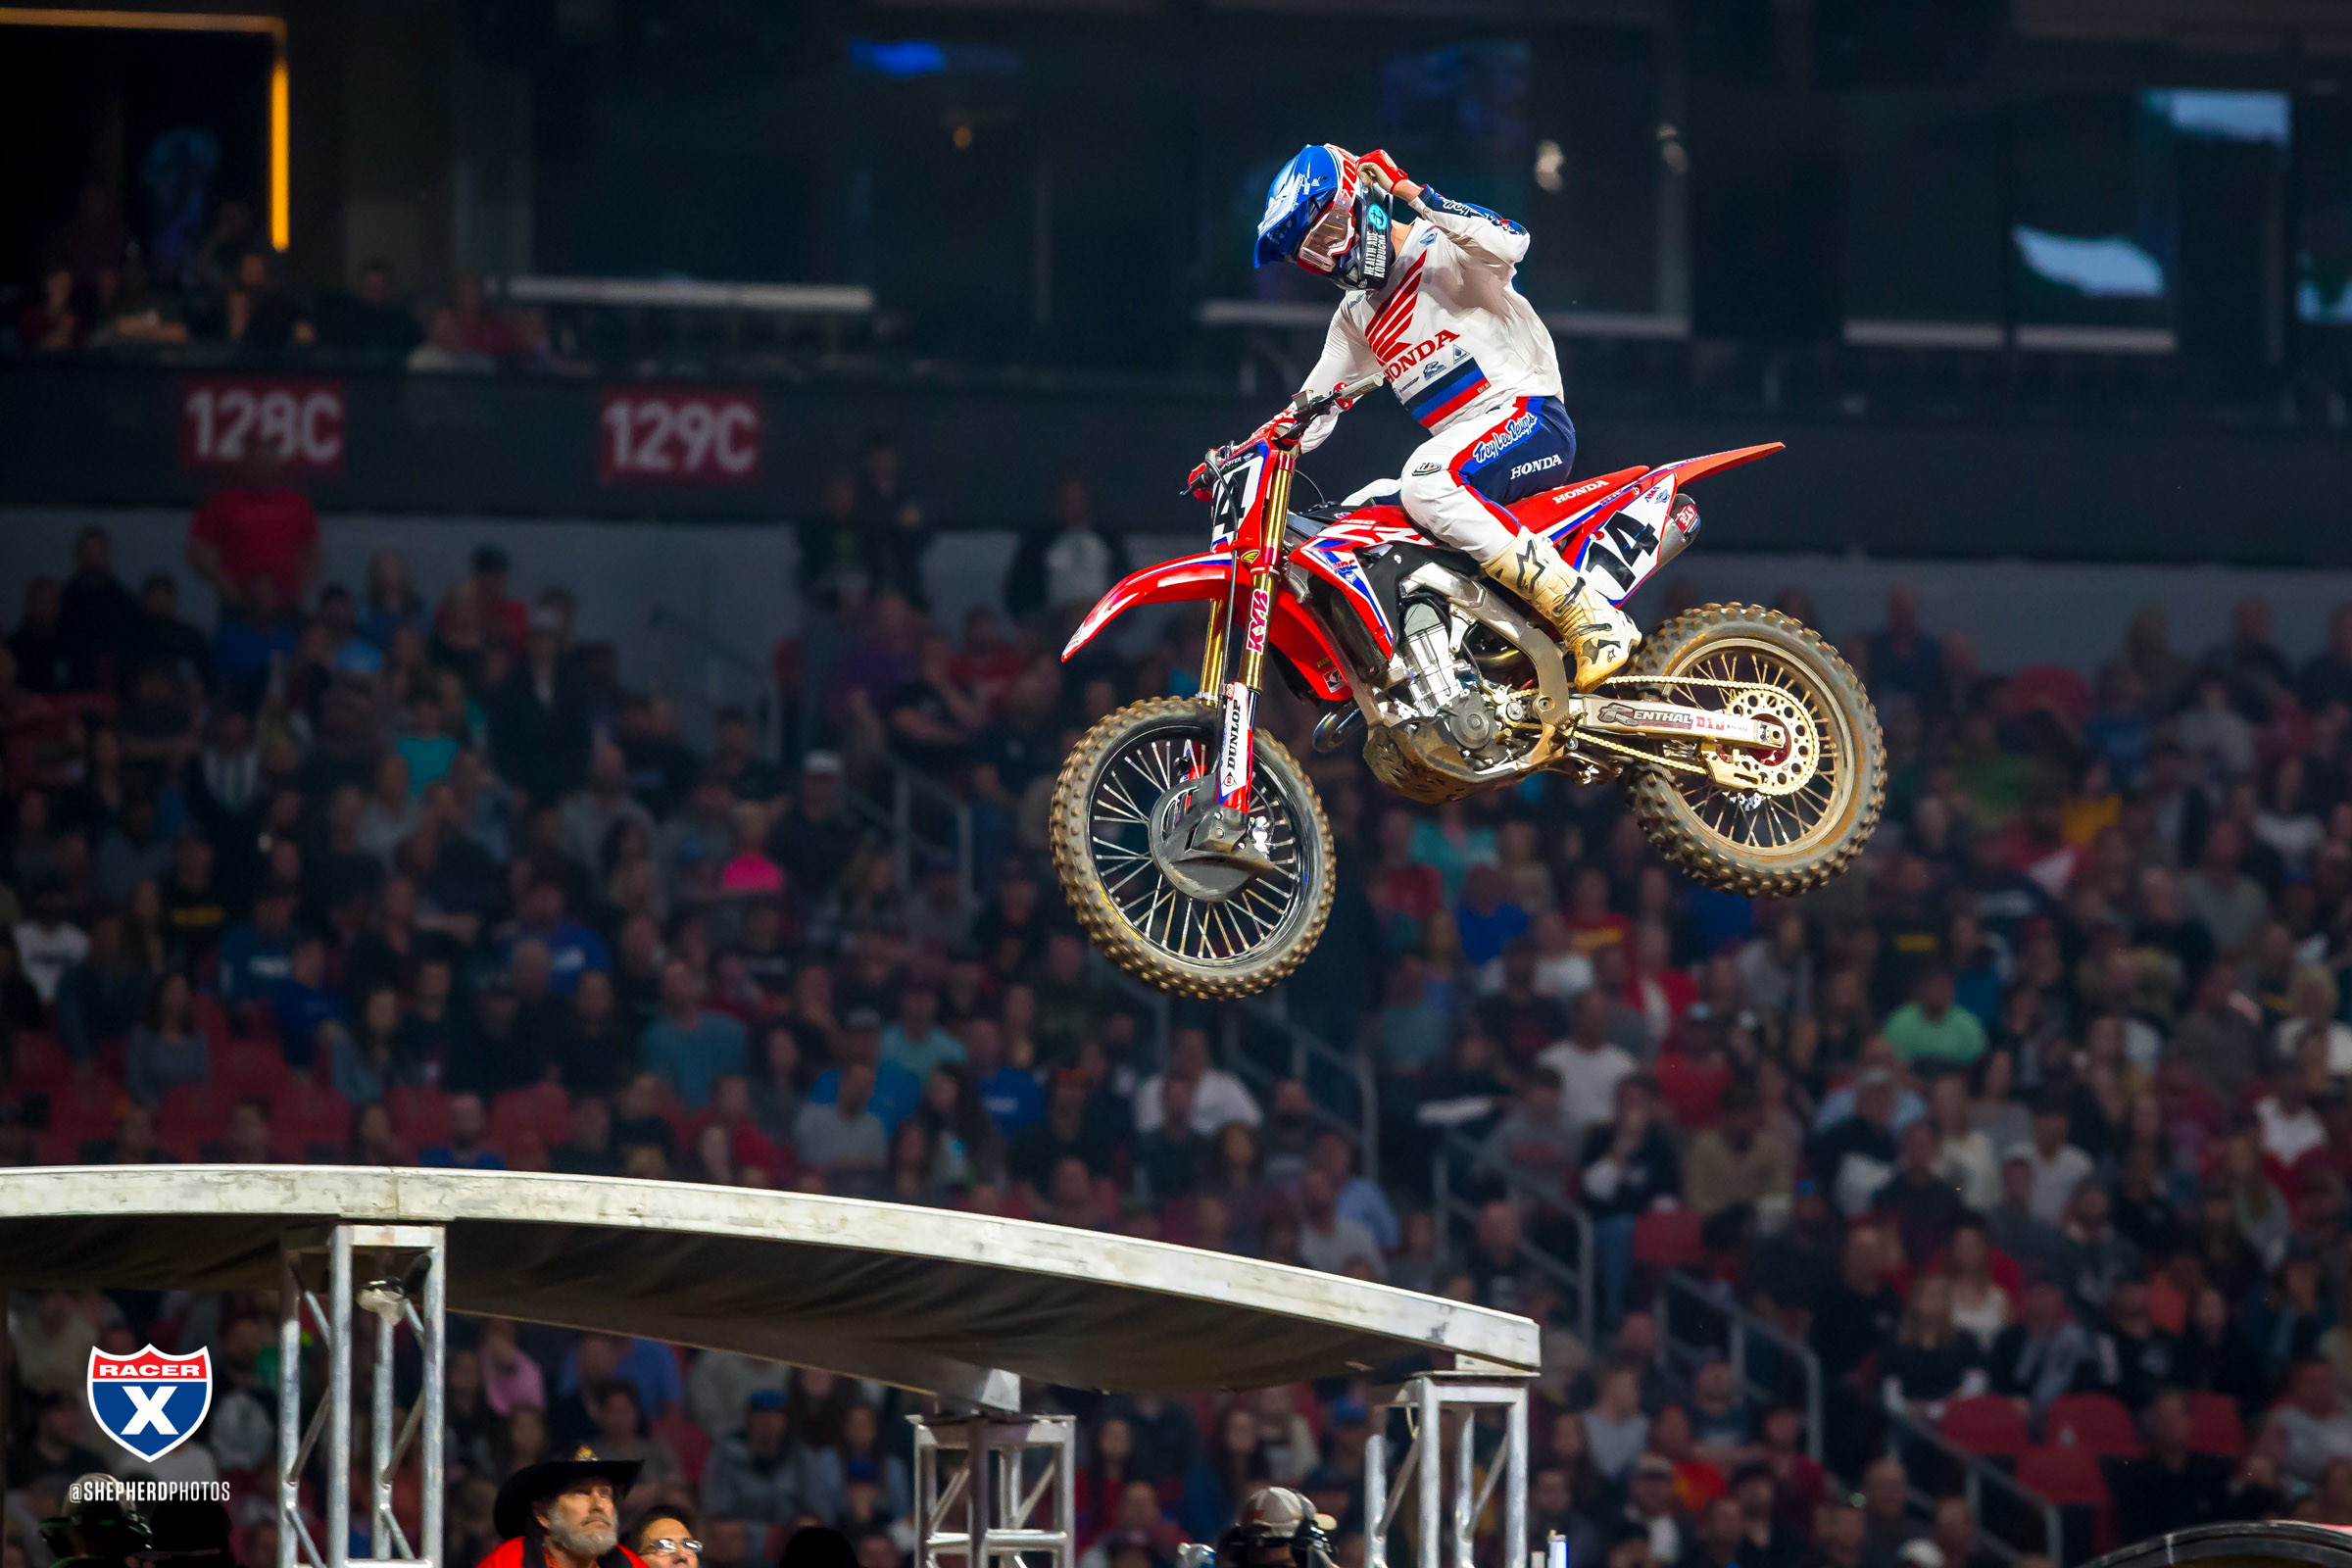 Seely_RS_SX19_Atlanta_023